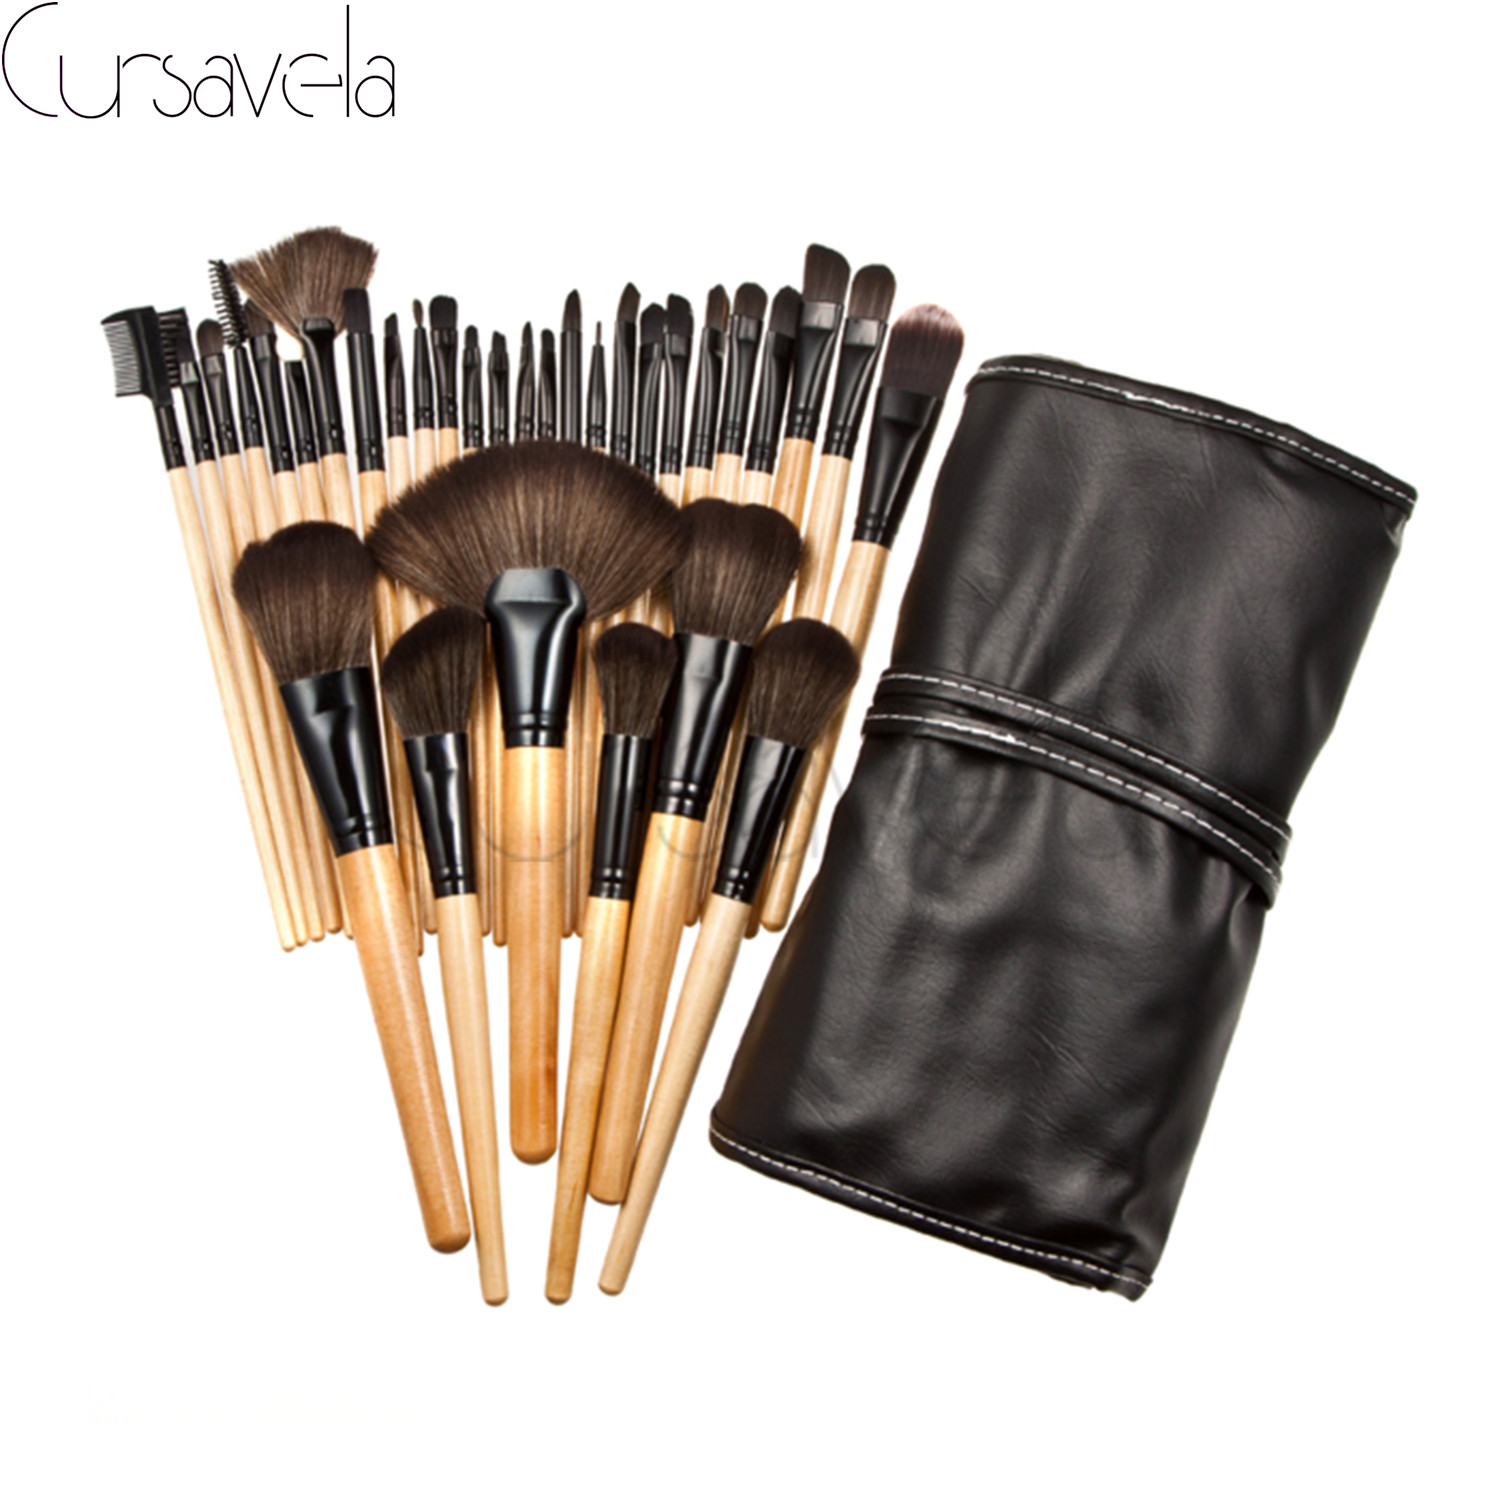 32 pcs Makeup Brushes Set Goat Hair Professional Brown Makeup Brush Foundation Powder Blush Eyeliner Brushes With PU Bag EAB031 32 pcs kit makeup brushes professional set cosmetic professional makeup brush set goat hair real makeup brushes brand techniques